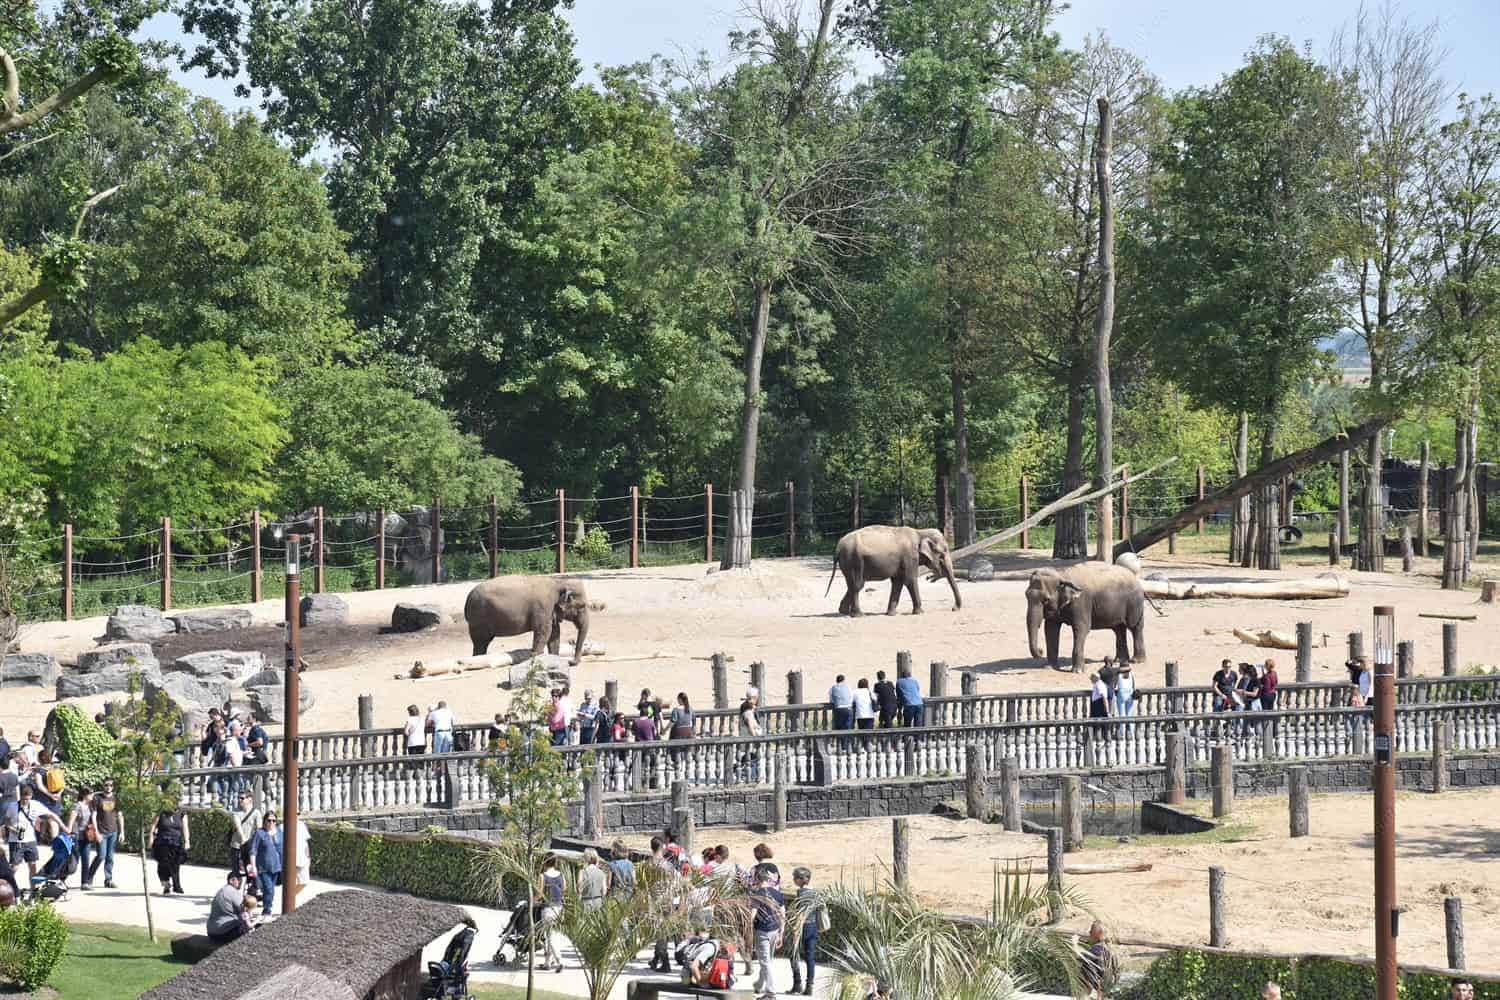 Elephants in the zoo